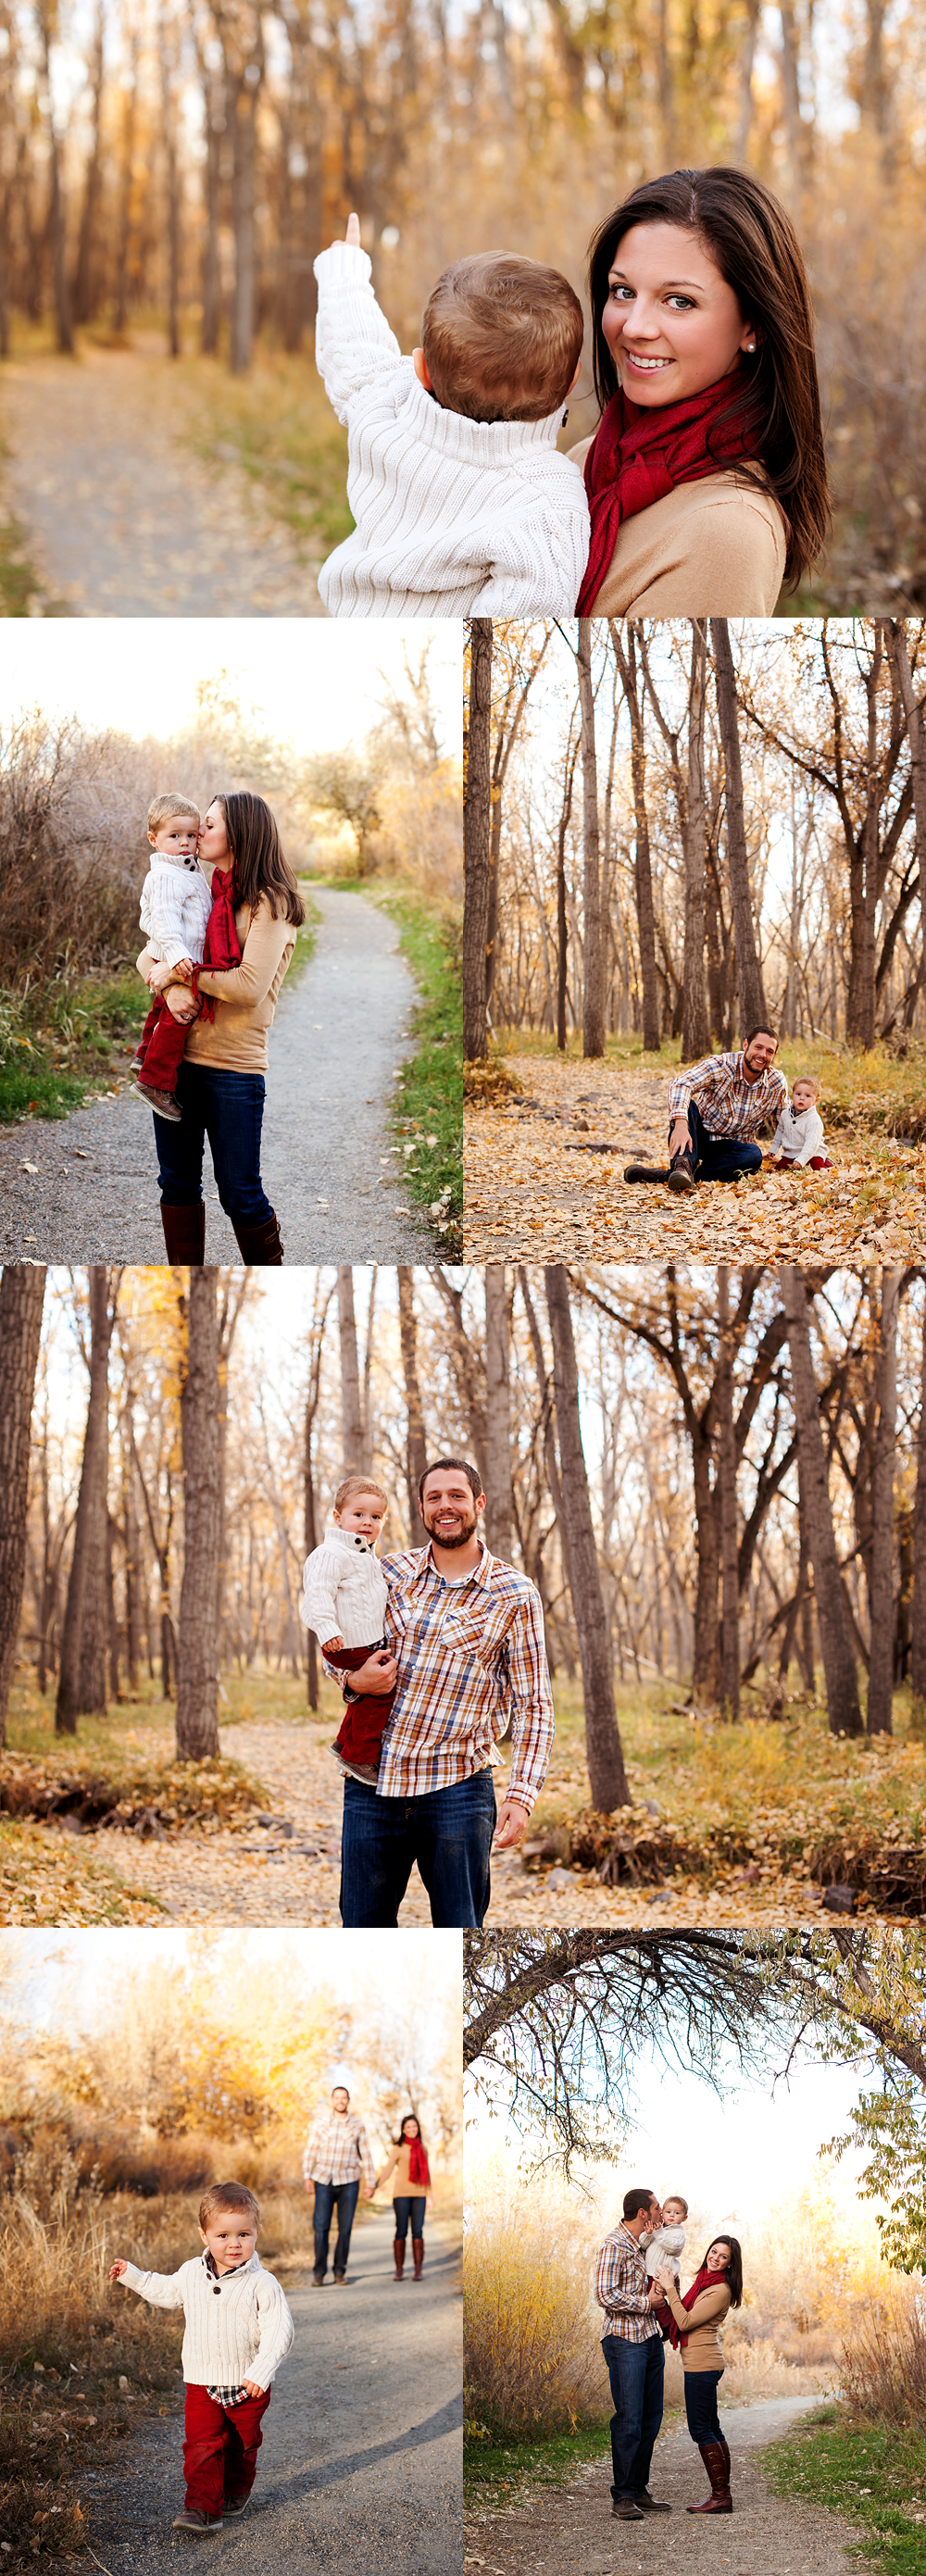 October Glow – The Tamme Family #photogpinspiration